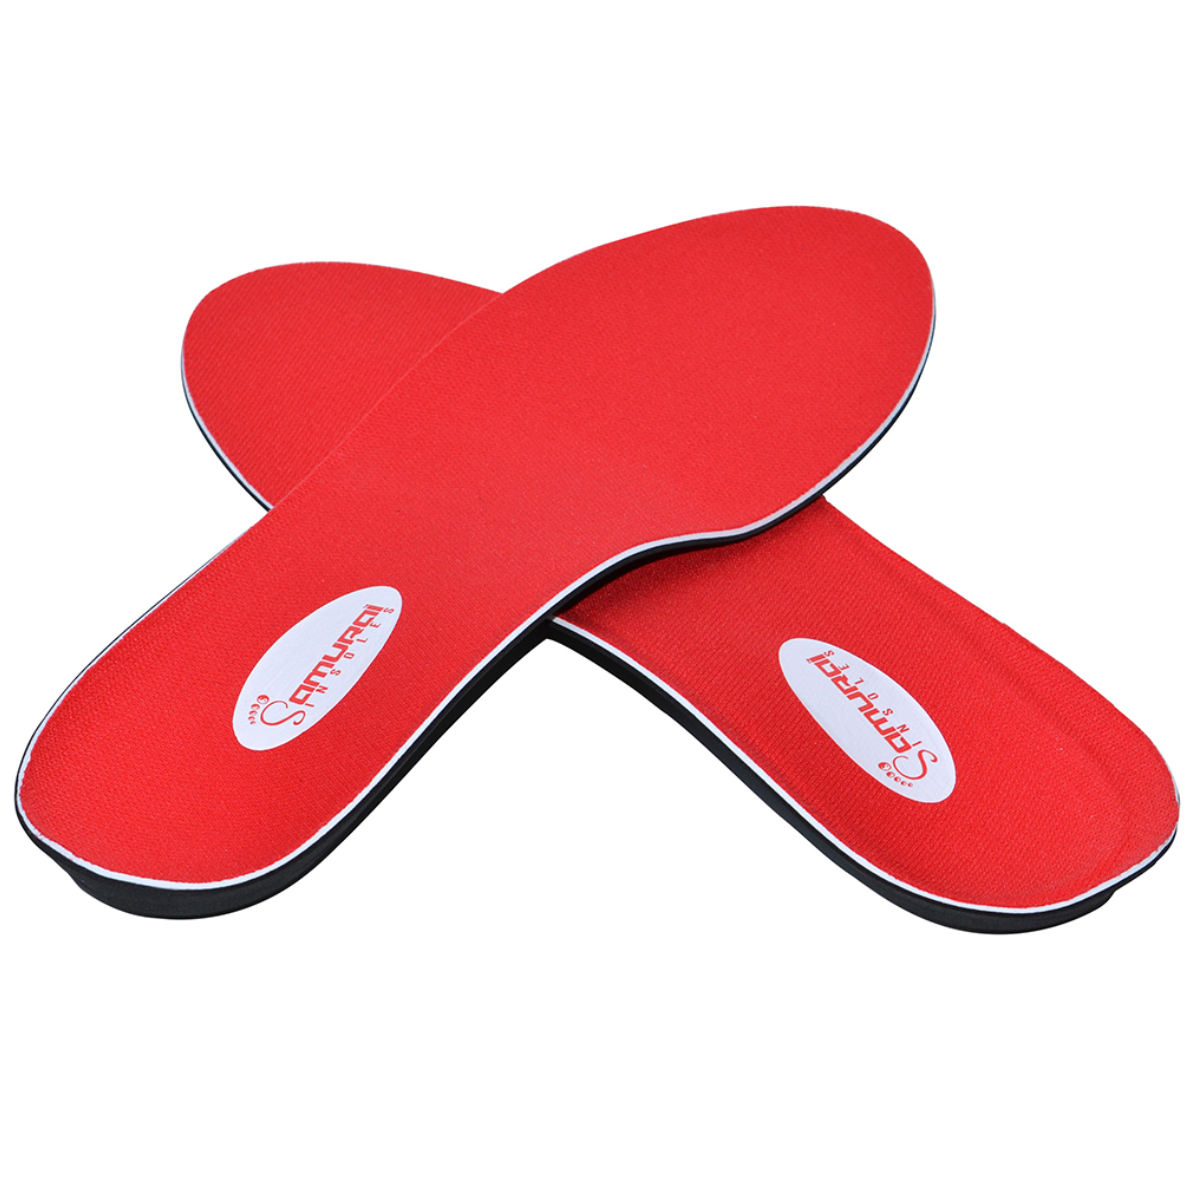 The Original Samurai Insoles®- Orthotics for Flat Feet